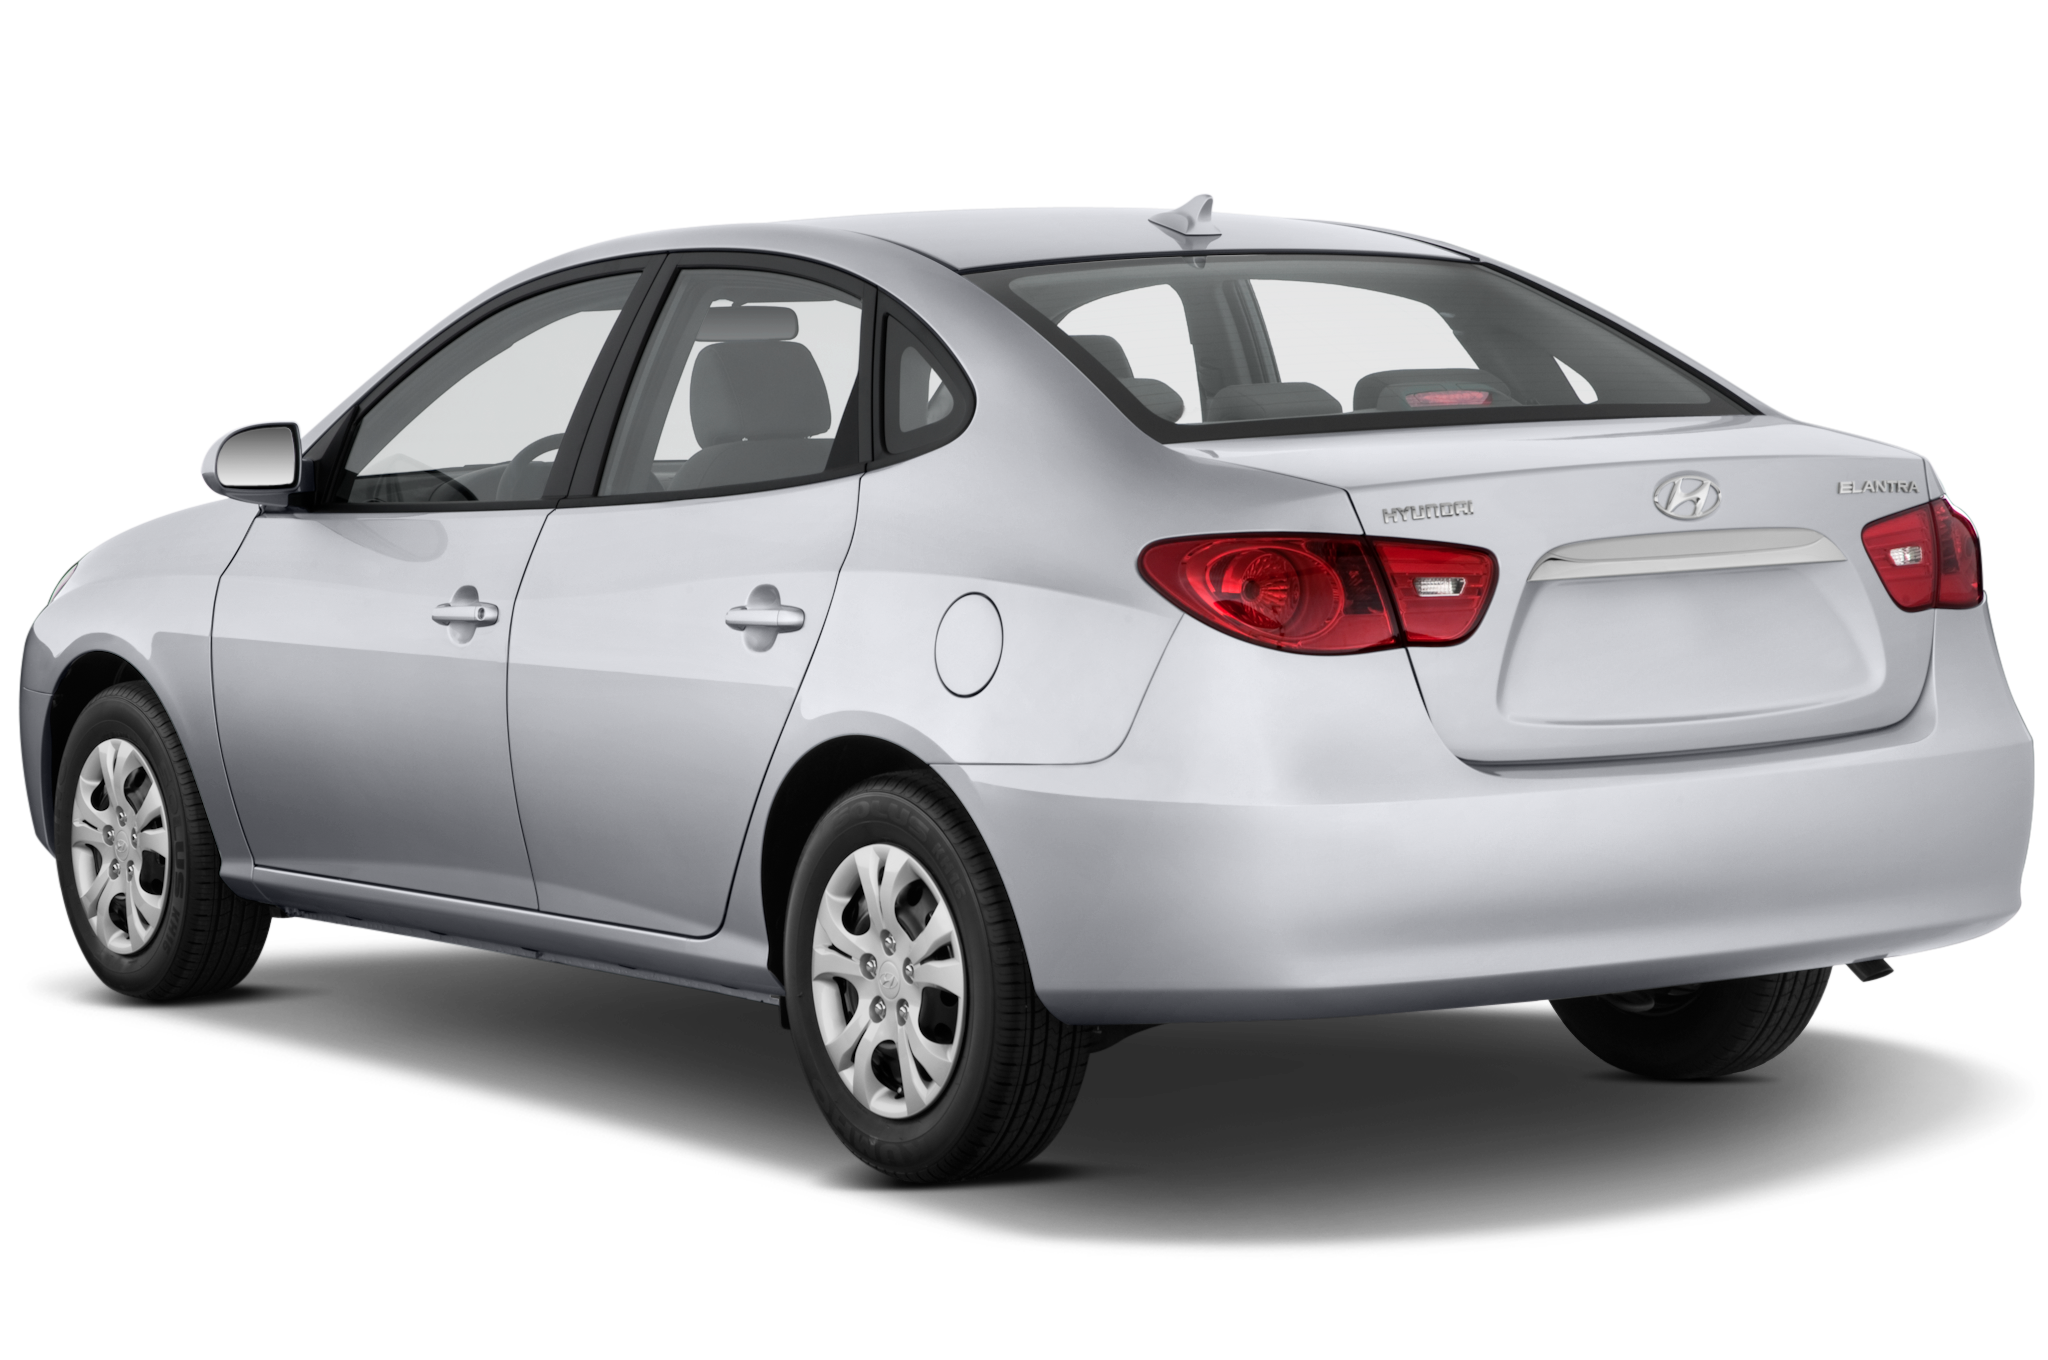 2010 hyundai elantra now available with in dash navigation. Black Bedroom Furniture Sets. Home Design Ideas